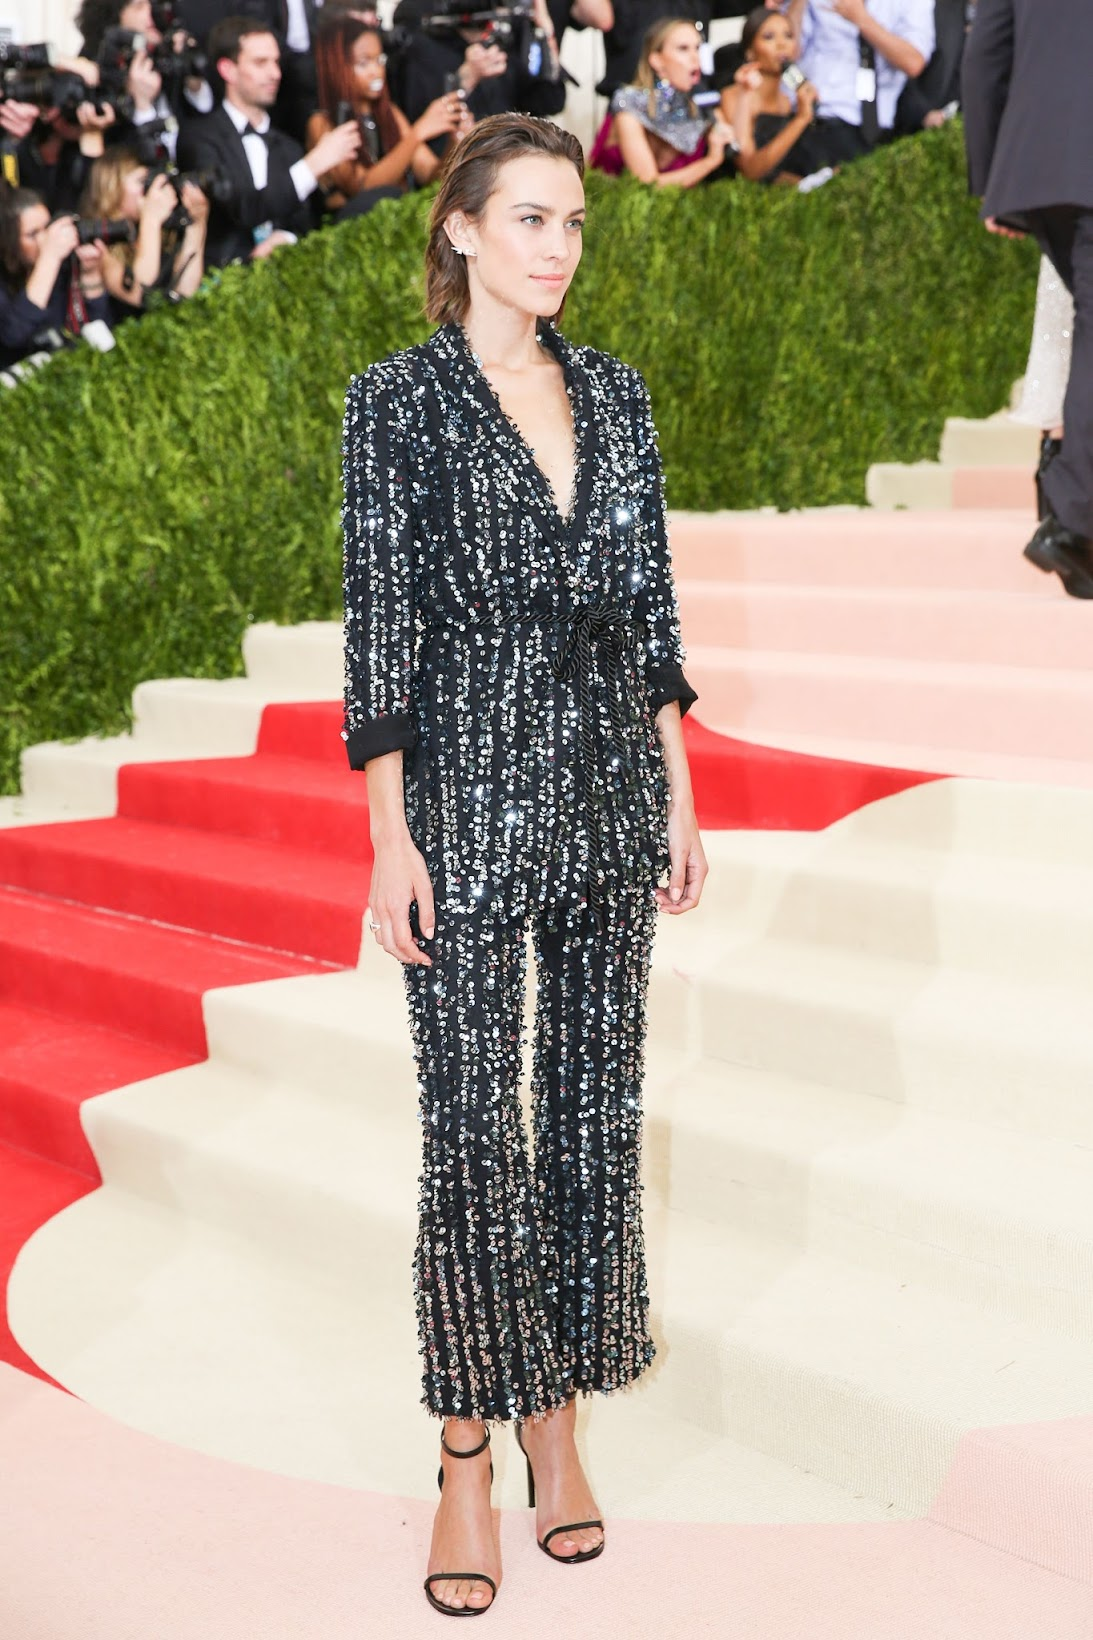 Best dressed at Met Gala 2016 | ManusXMachina, Alexa Chung Met Gala 2016 red carpet